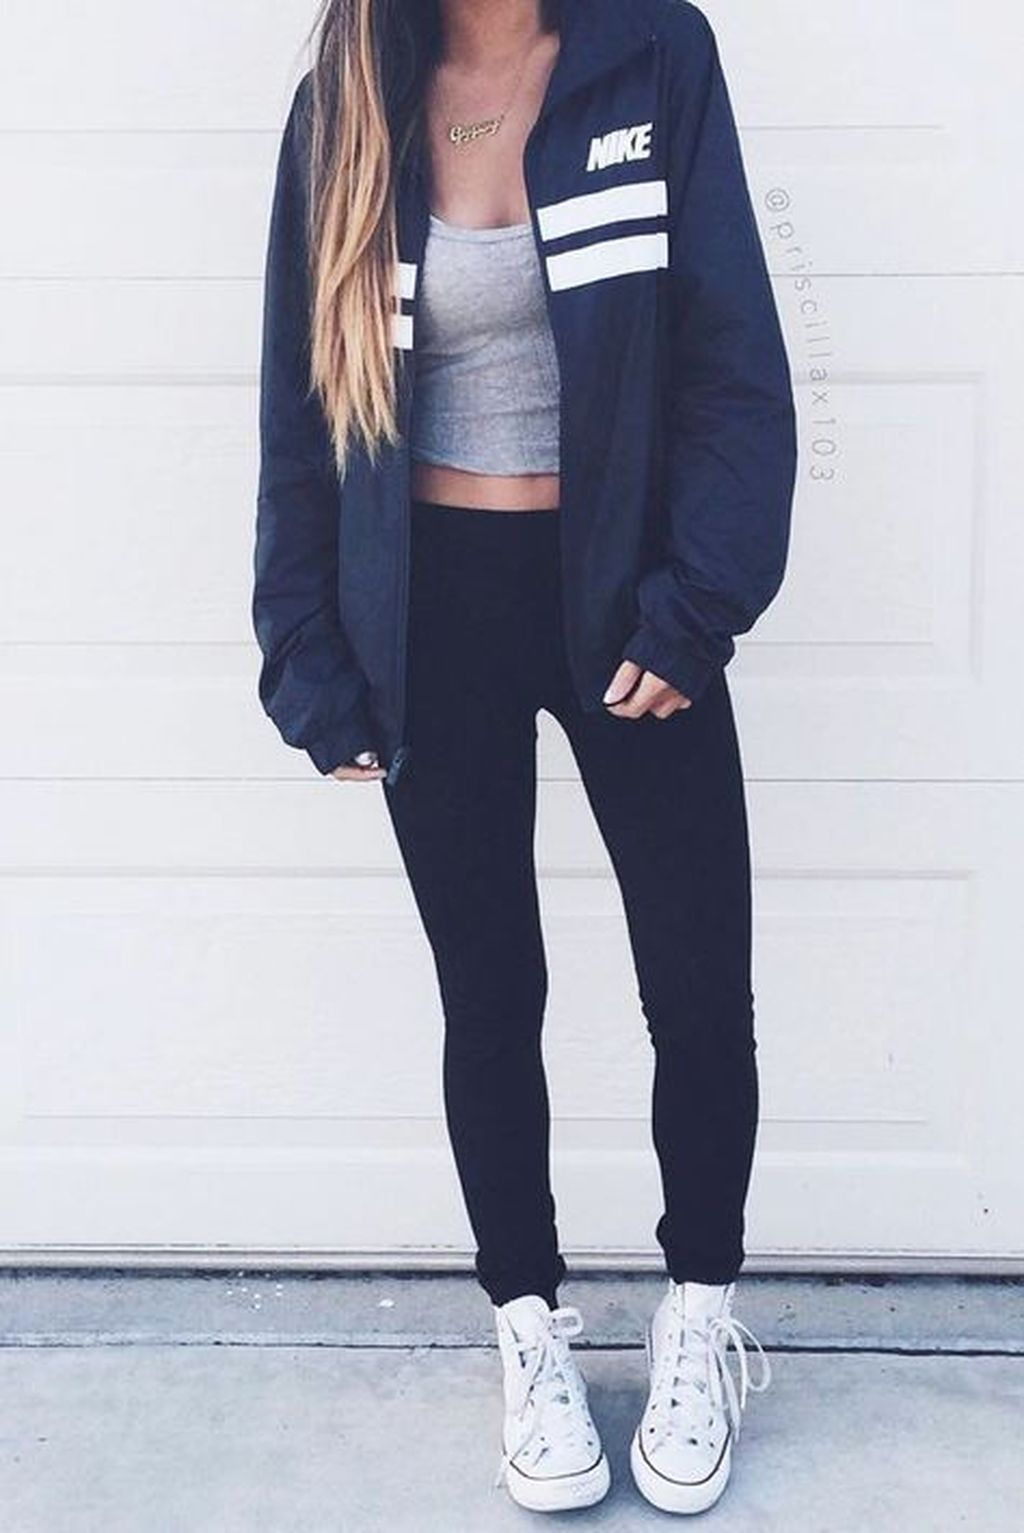 46 Trends Clothes Back To School Outfits Ideas For Teens